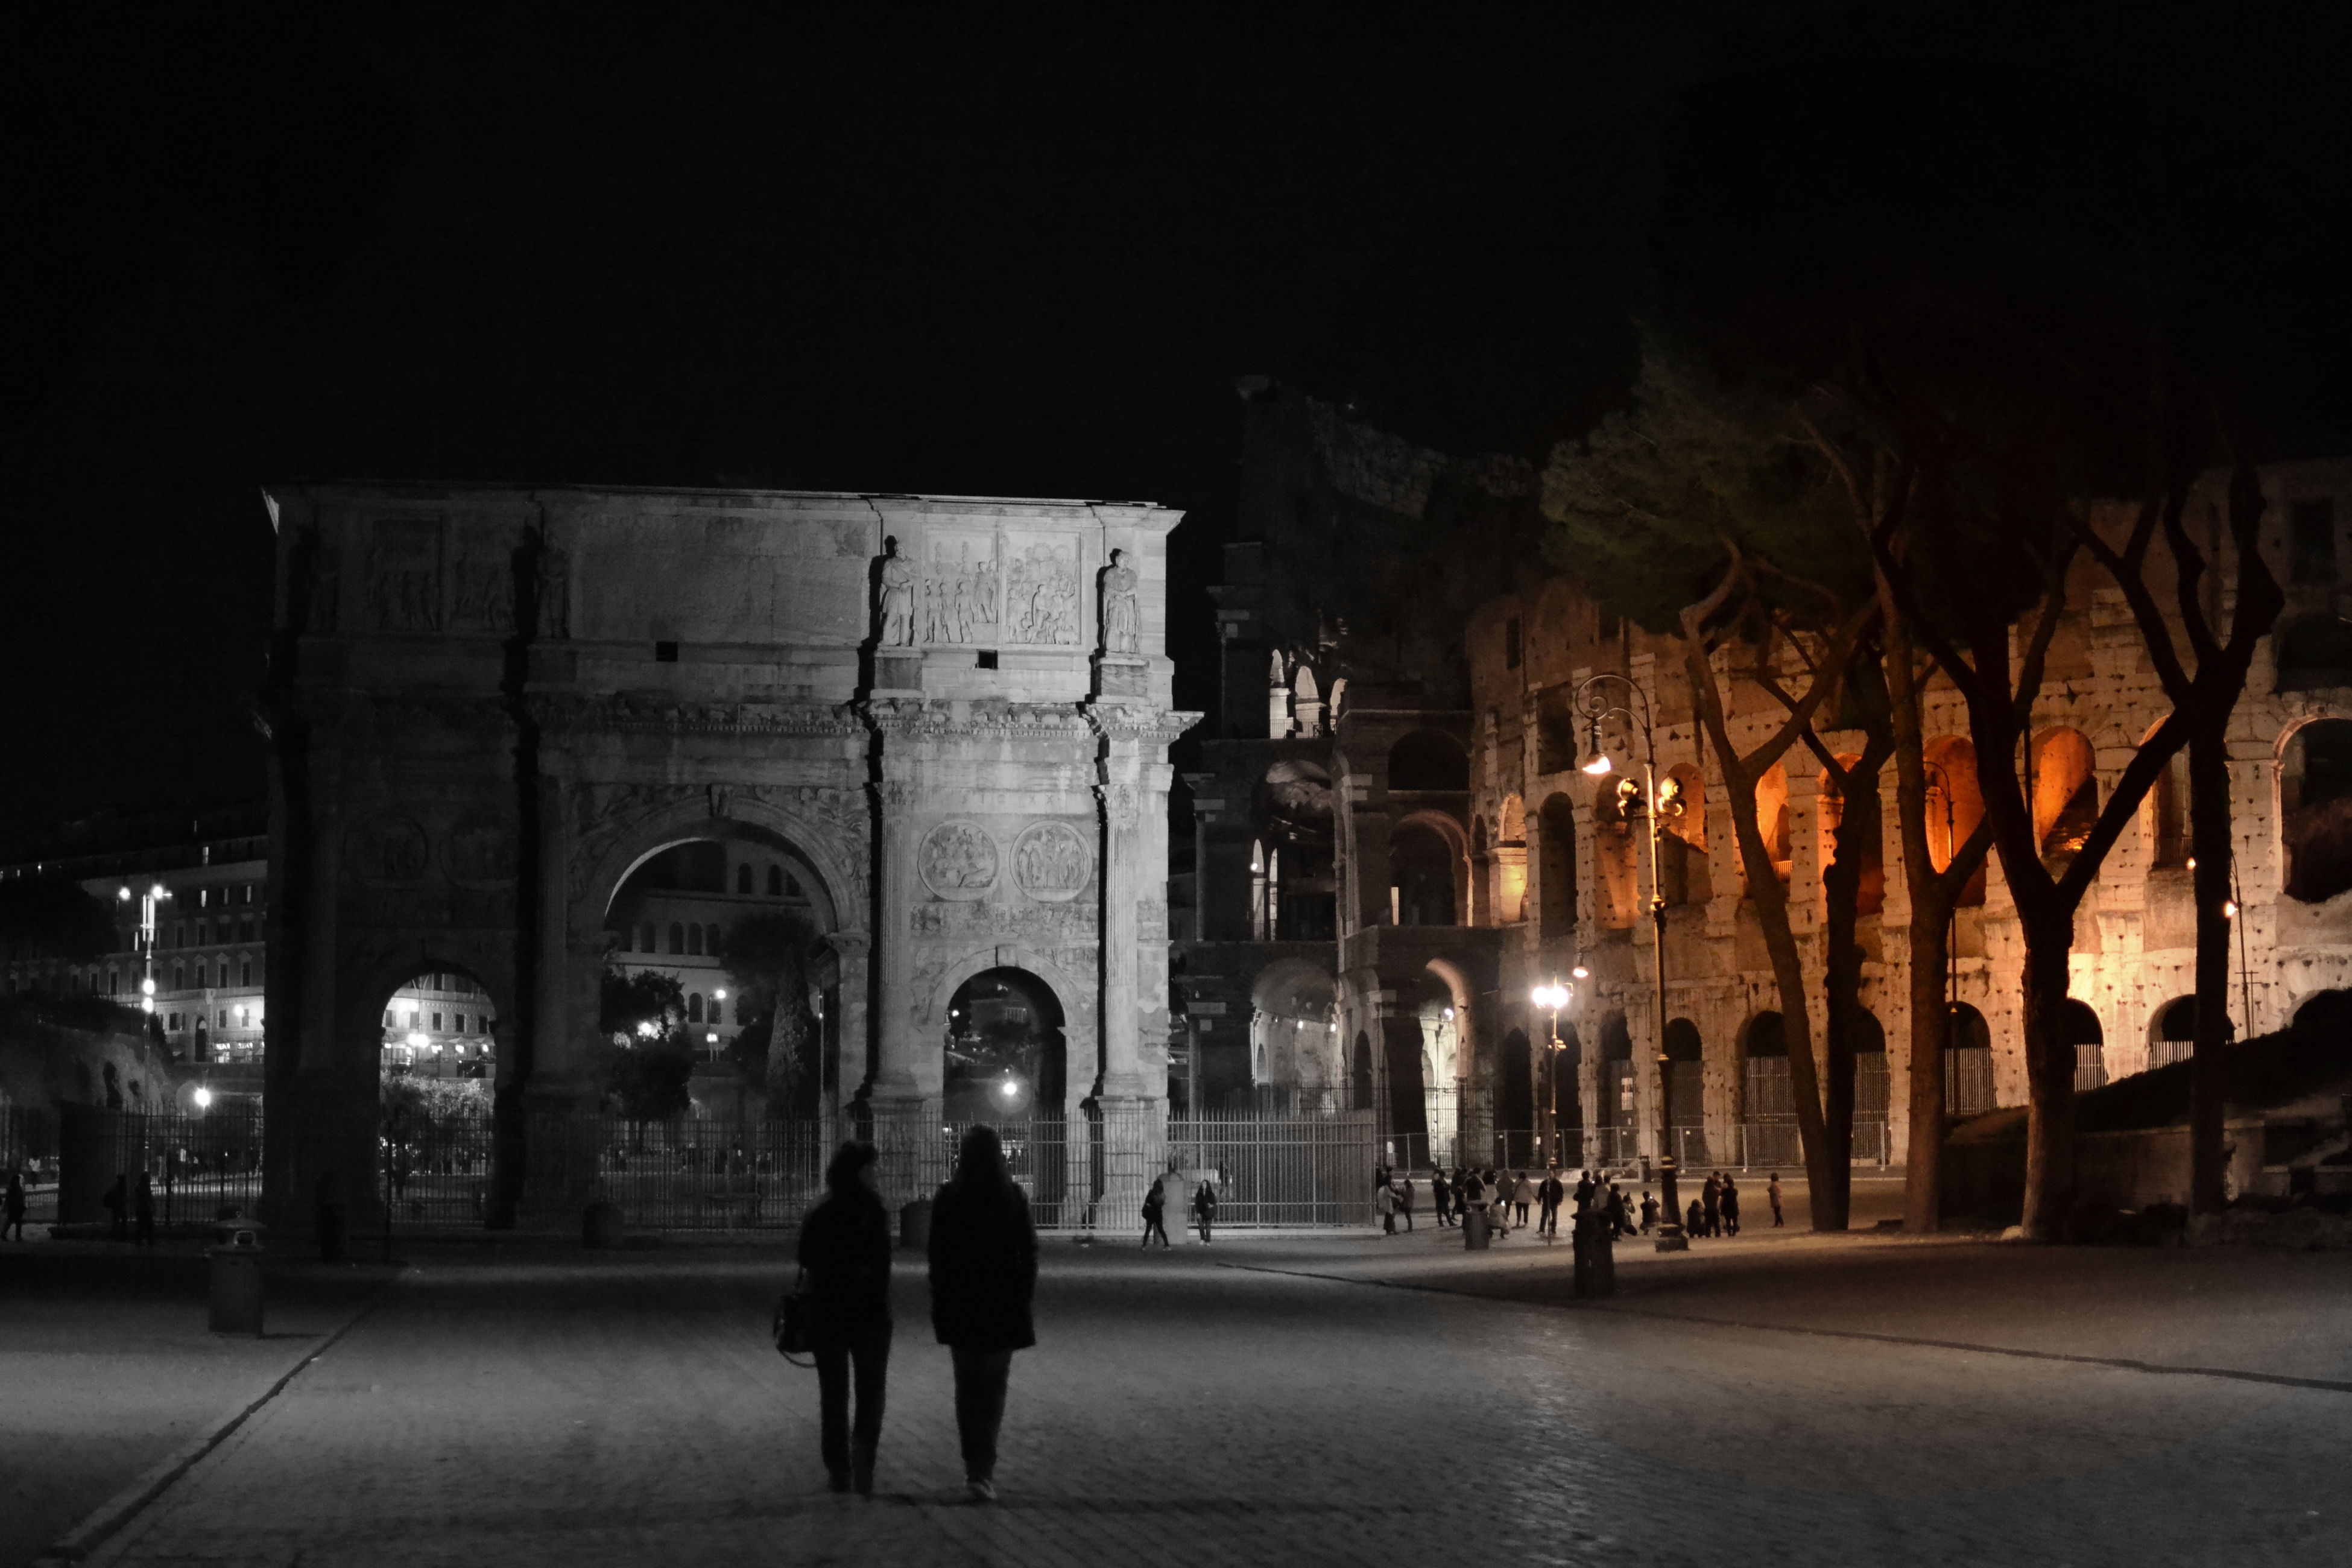 illuminated, night, architecture, built structure, building exterior, standing, men, lifestyles, full length, person, outdoors, place of worship